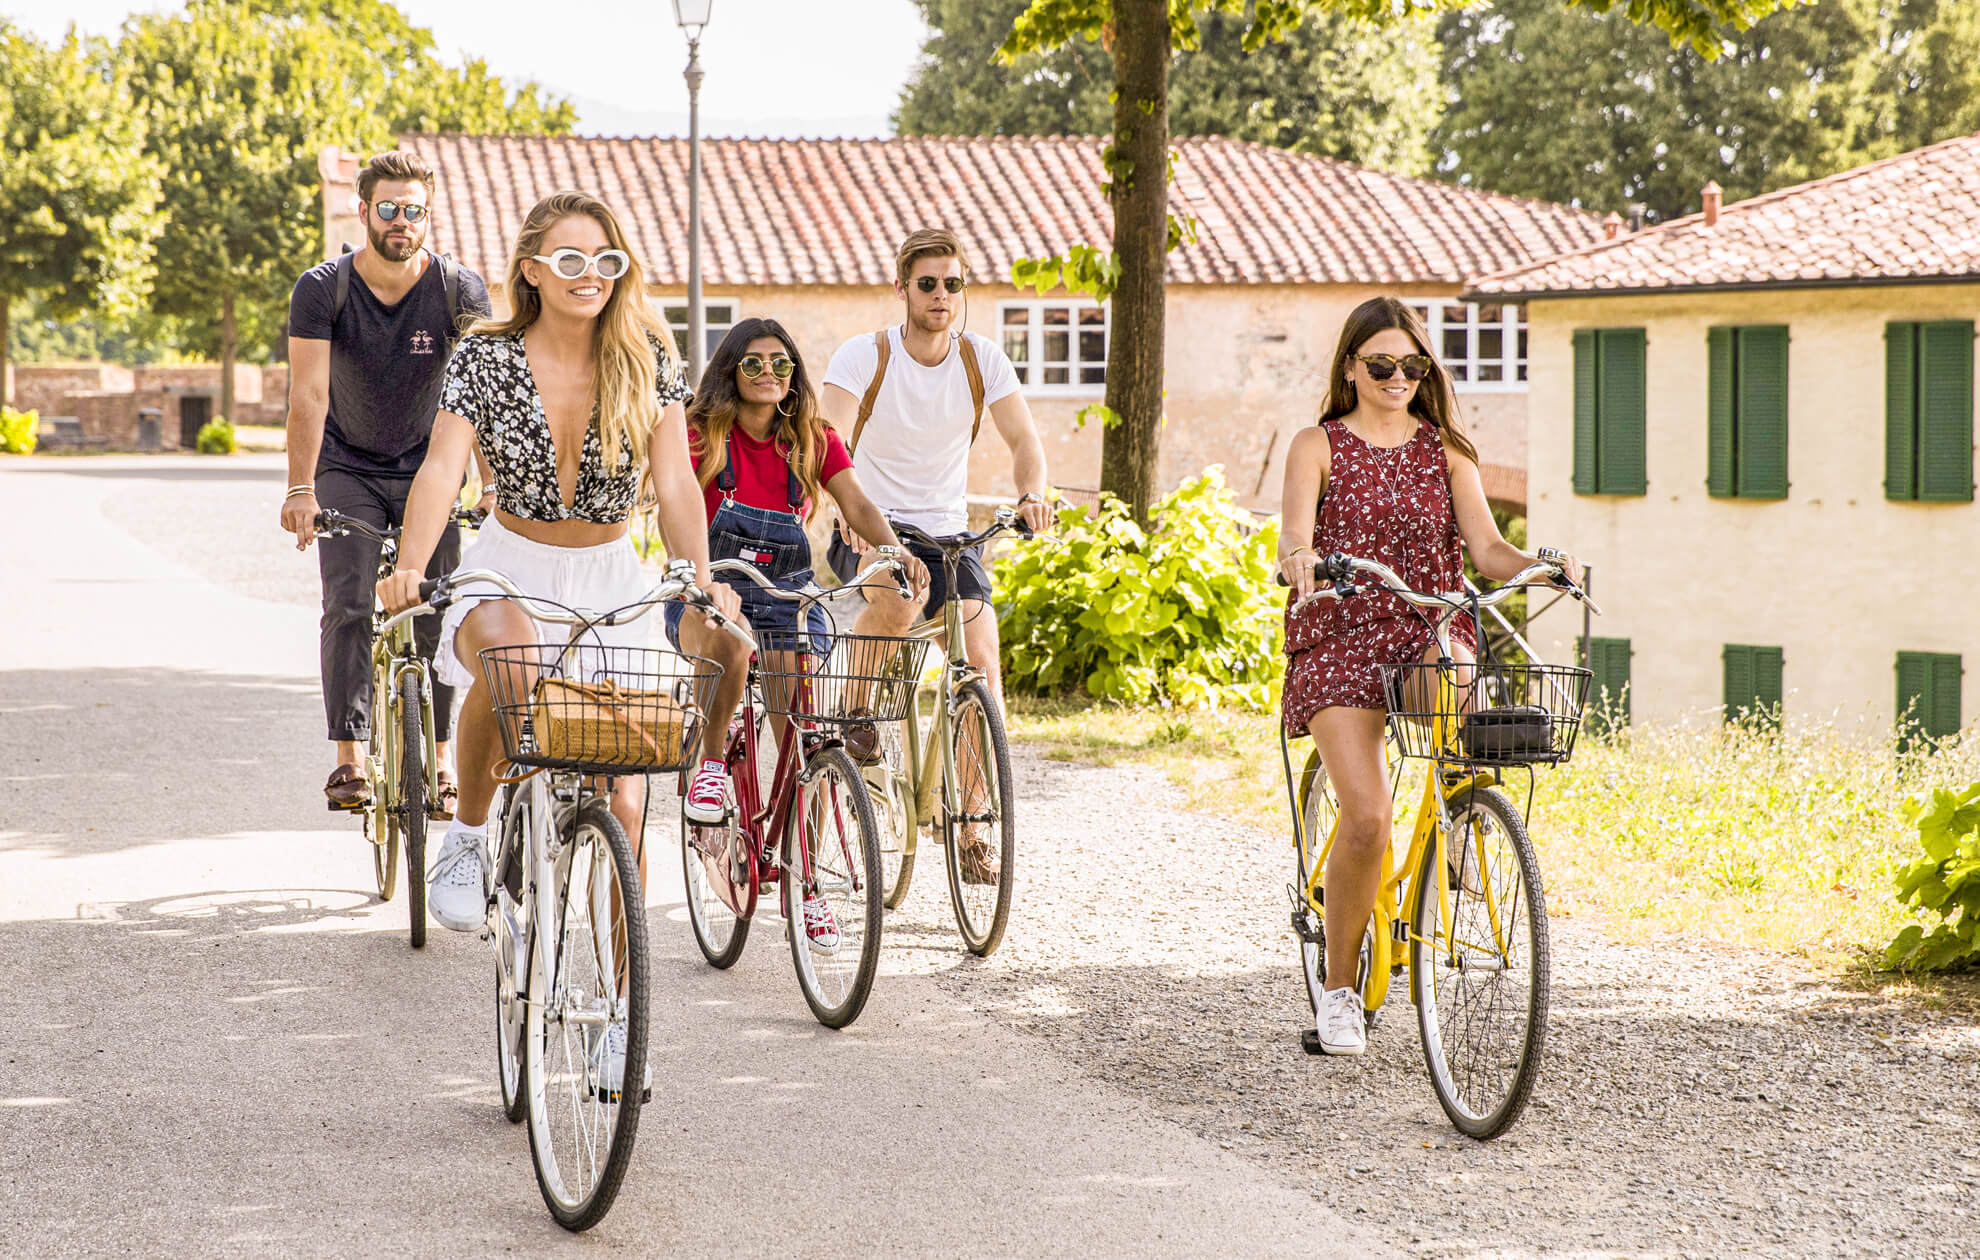 Group riding bikes in Italy